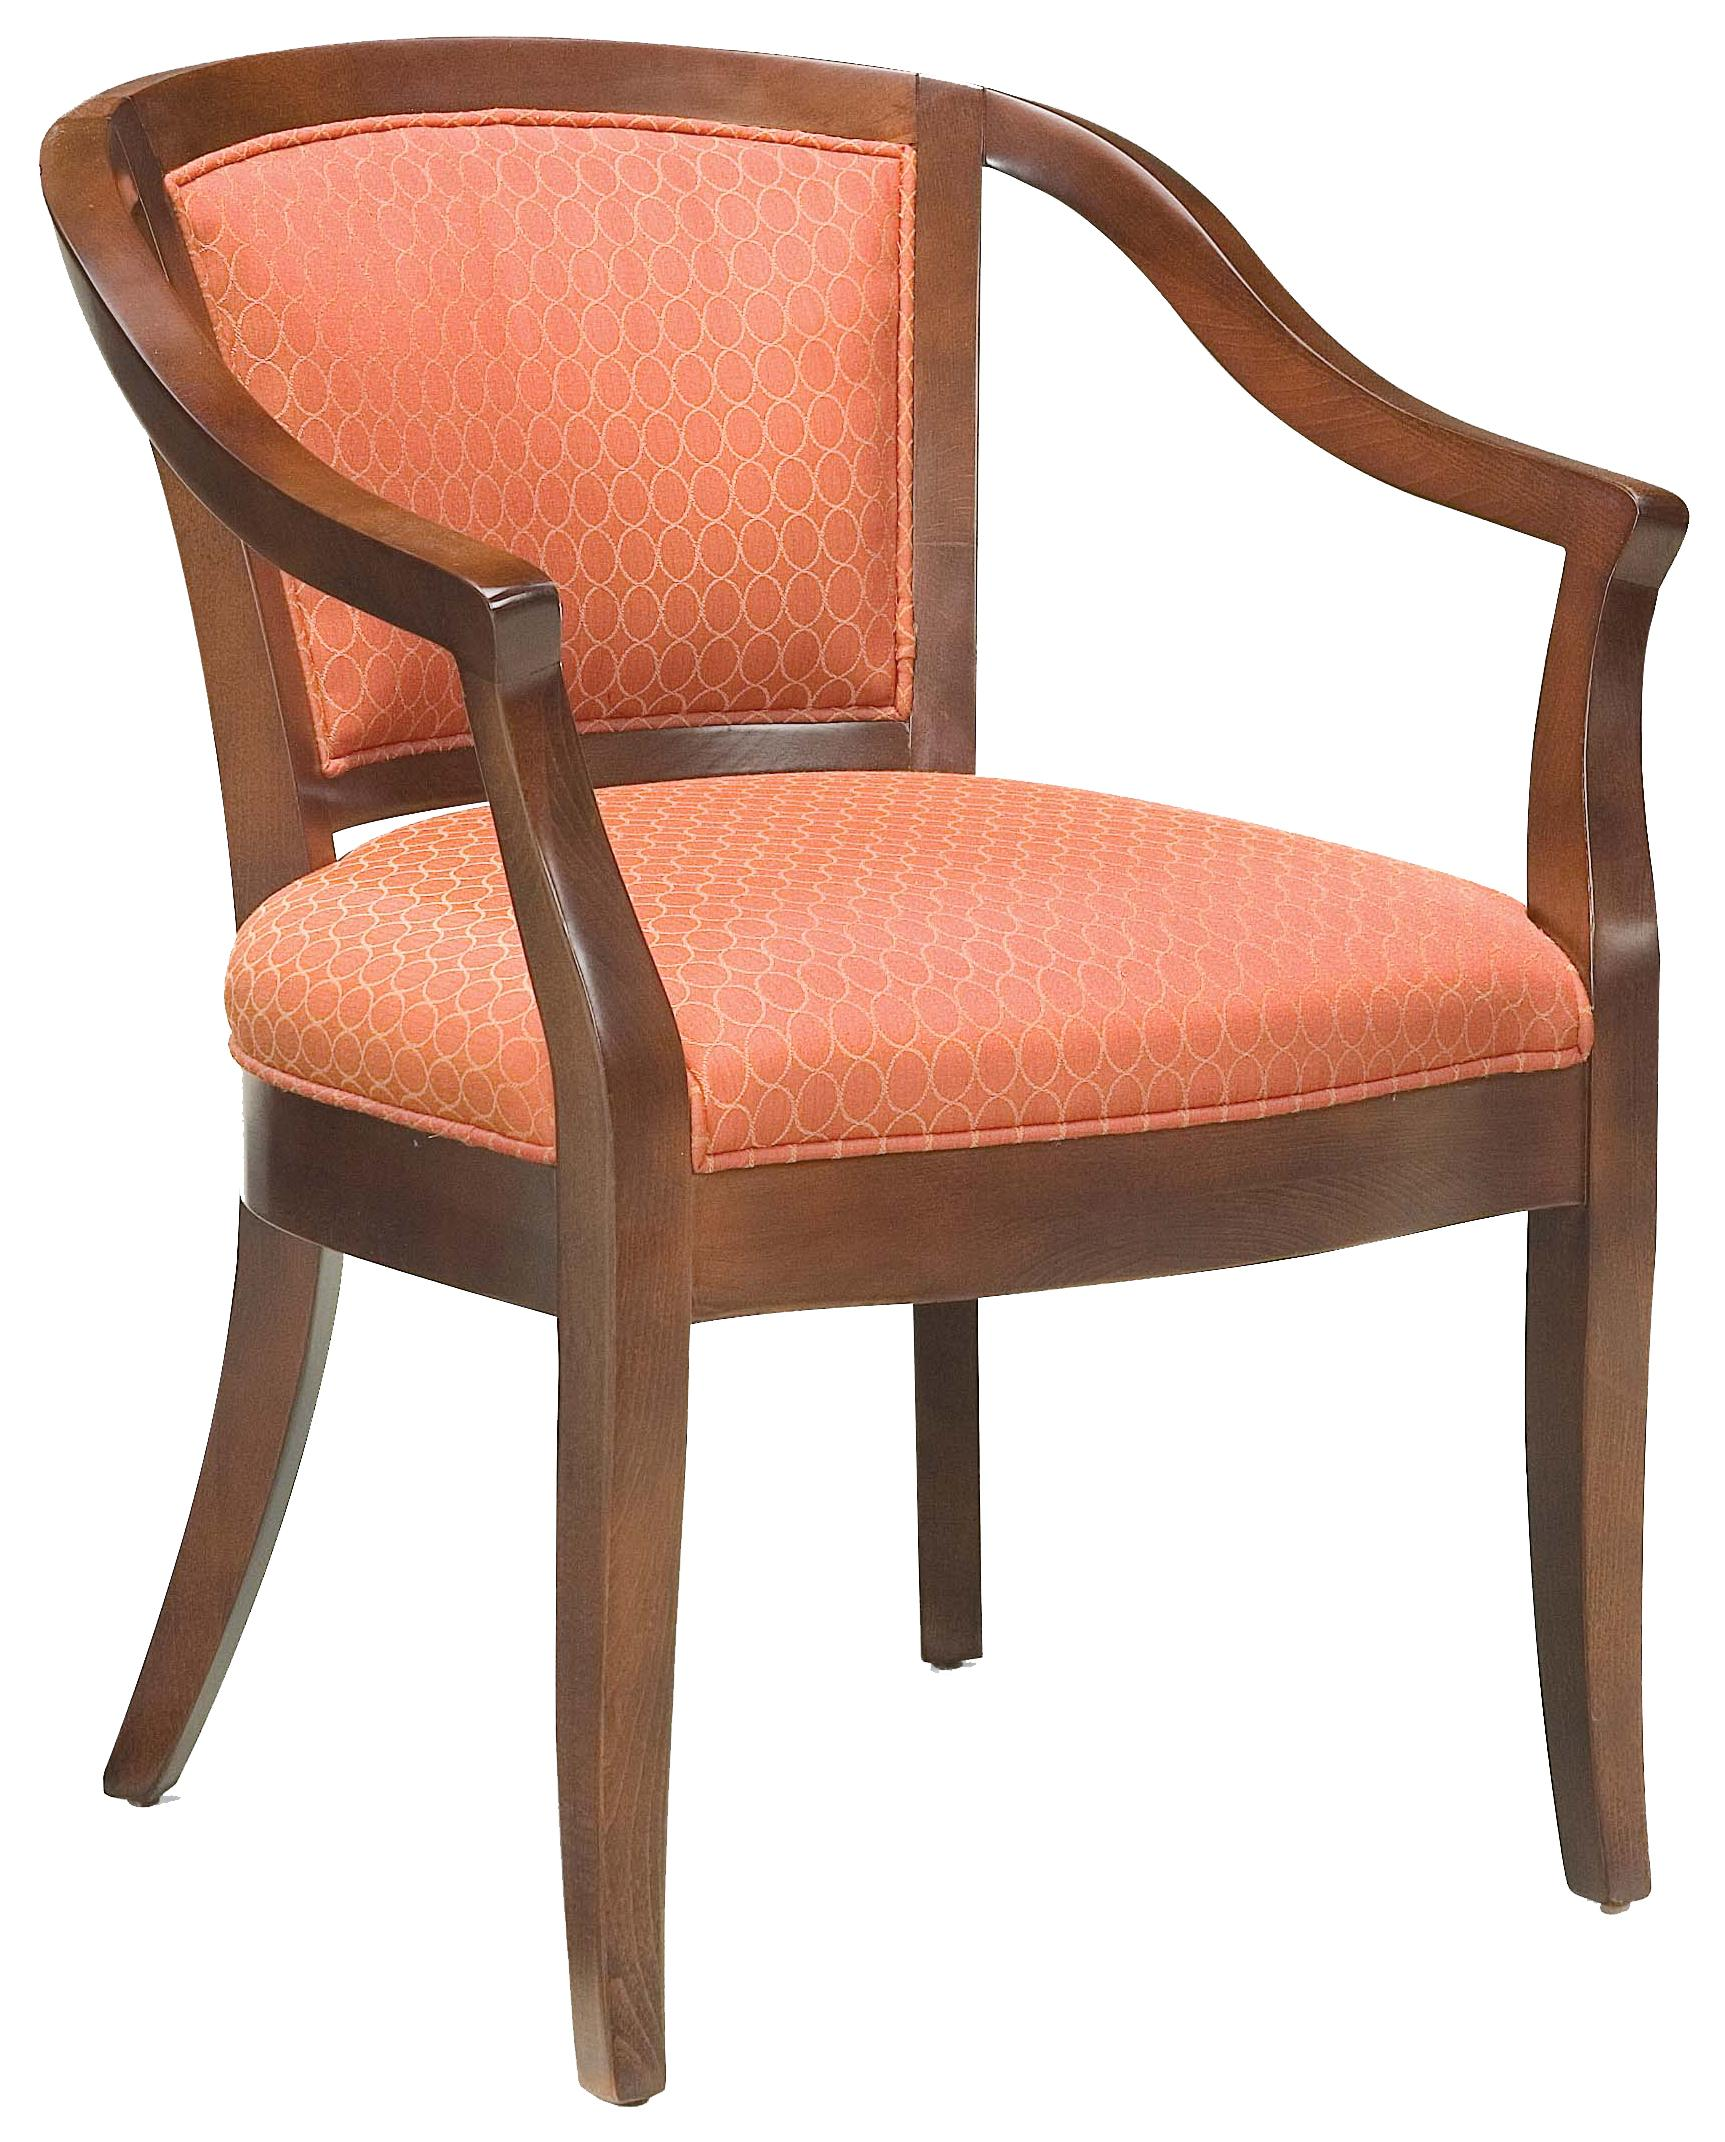 Fairfield Chairs Occasional Chair - Item Number: 6016-01